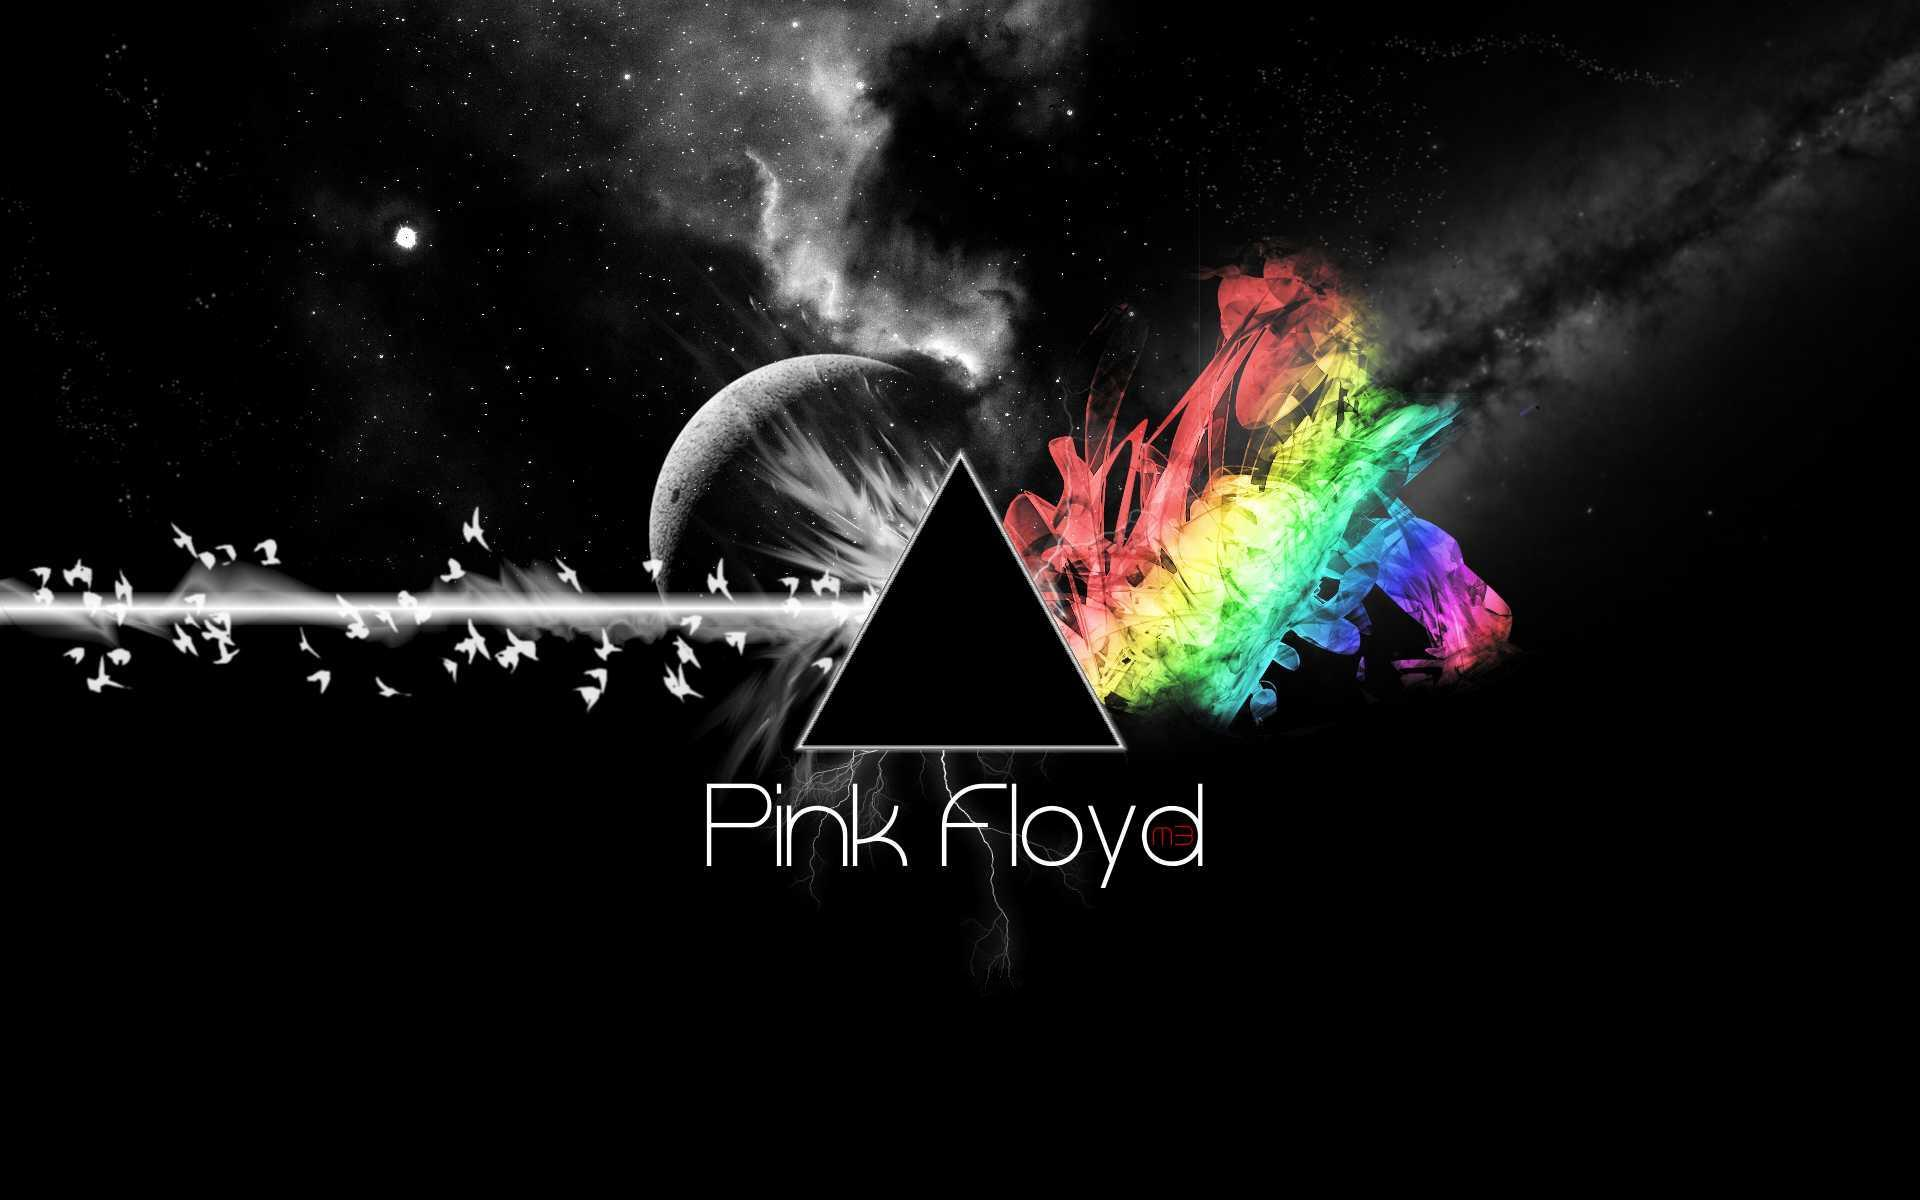 pink floyd wallpaper